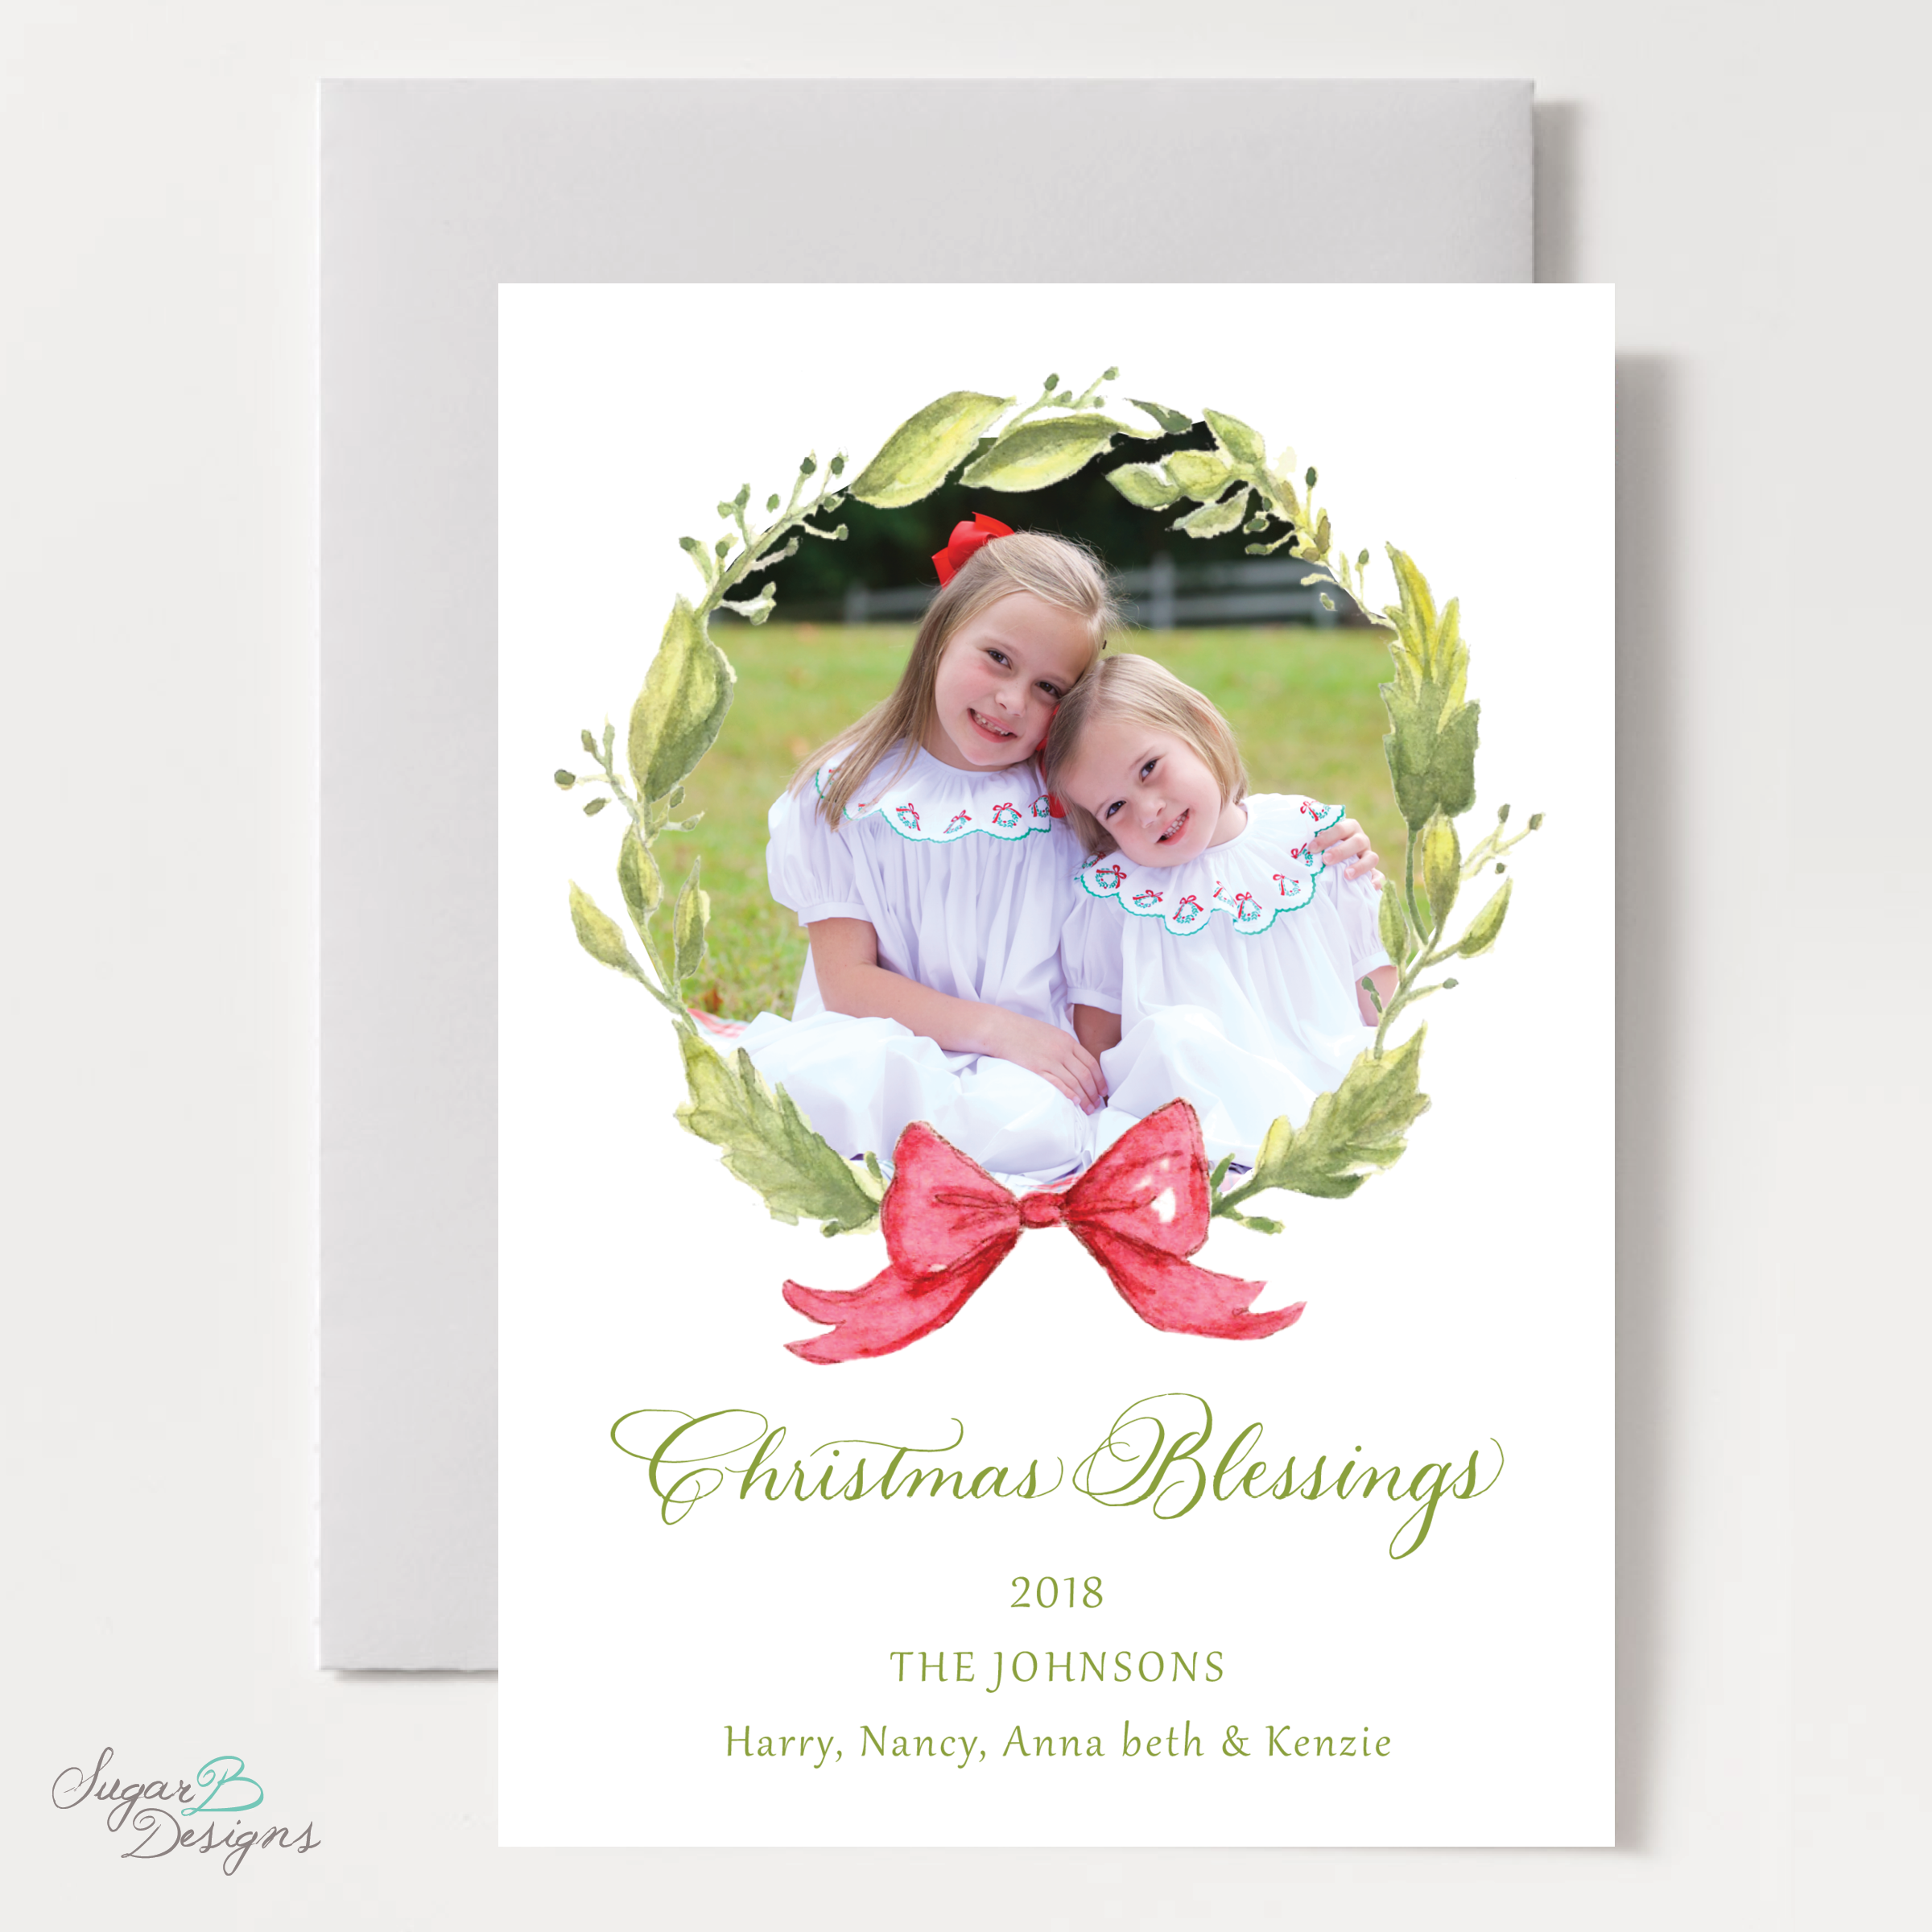 Petite Wreath Red Family Christmas Card by Sugar B Designs.png